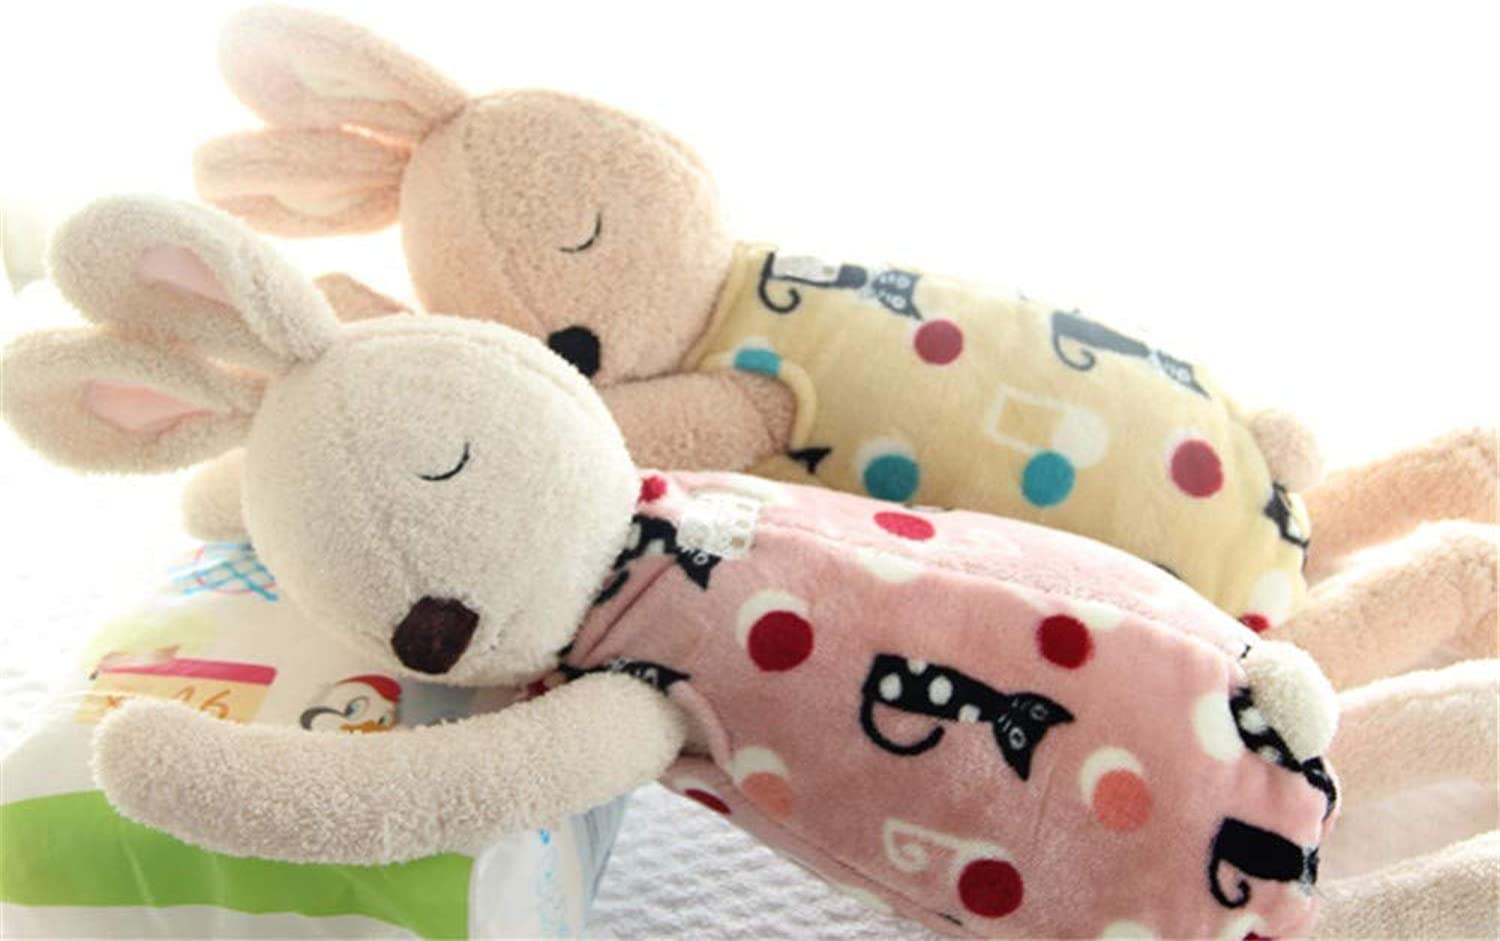 DIEIGEIHAO Bunny Adult Baby Pillow Plush Toy Rabbit Doll Gift, 21